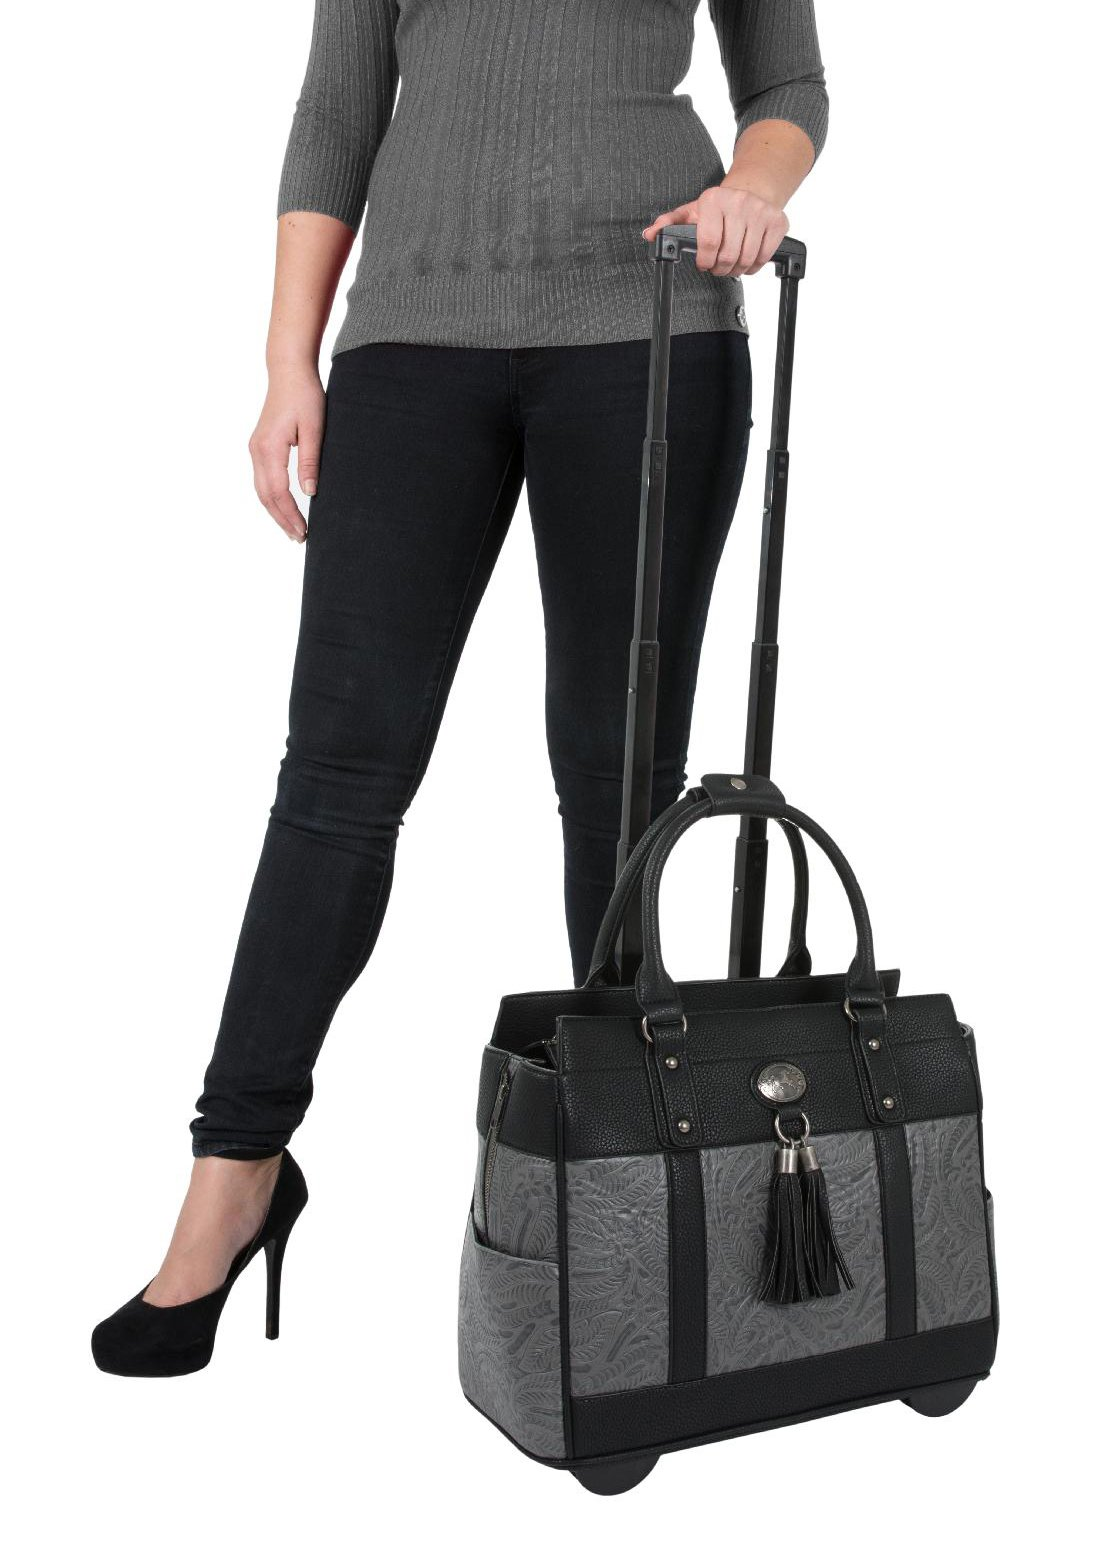 ''The Dallas 2'' Black & Grey Tooled Rolling iPad Tablet or Laptop Tote Carryall Bag